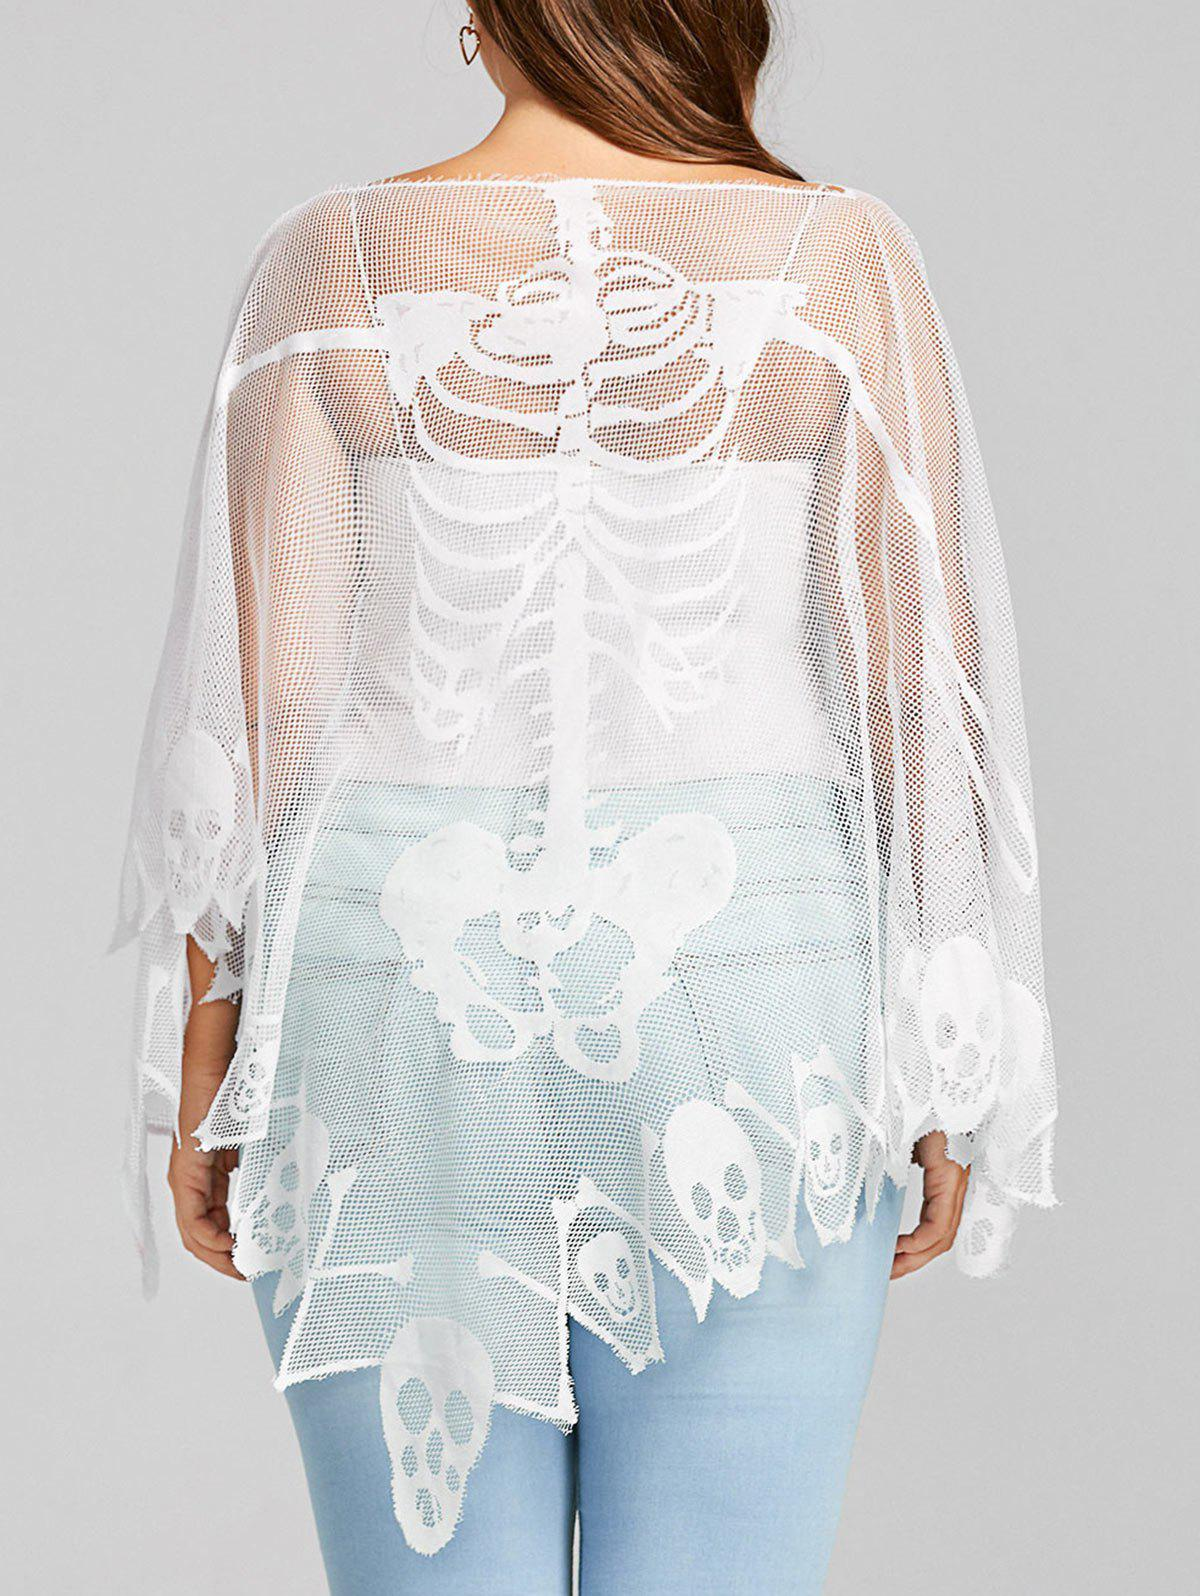 Plus Size Sheer Skull Mesh Batwing Sleeve T-shirt plus size tank dress with long mesh sheer cardigan